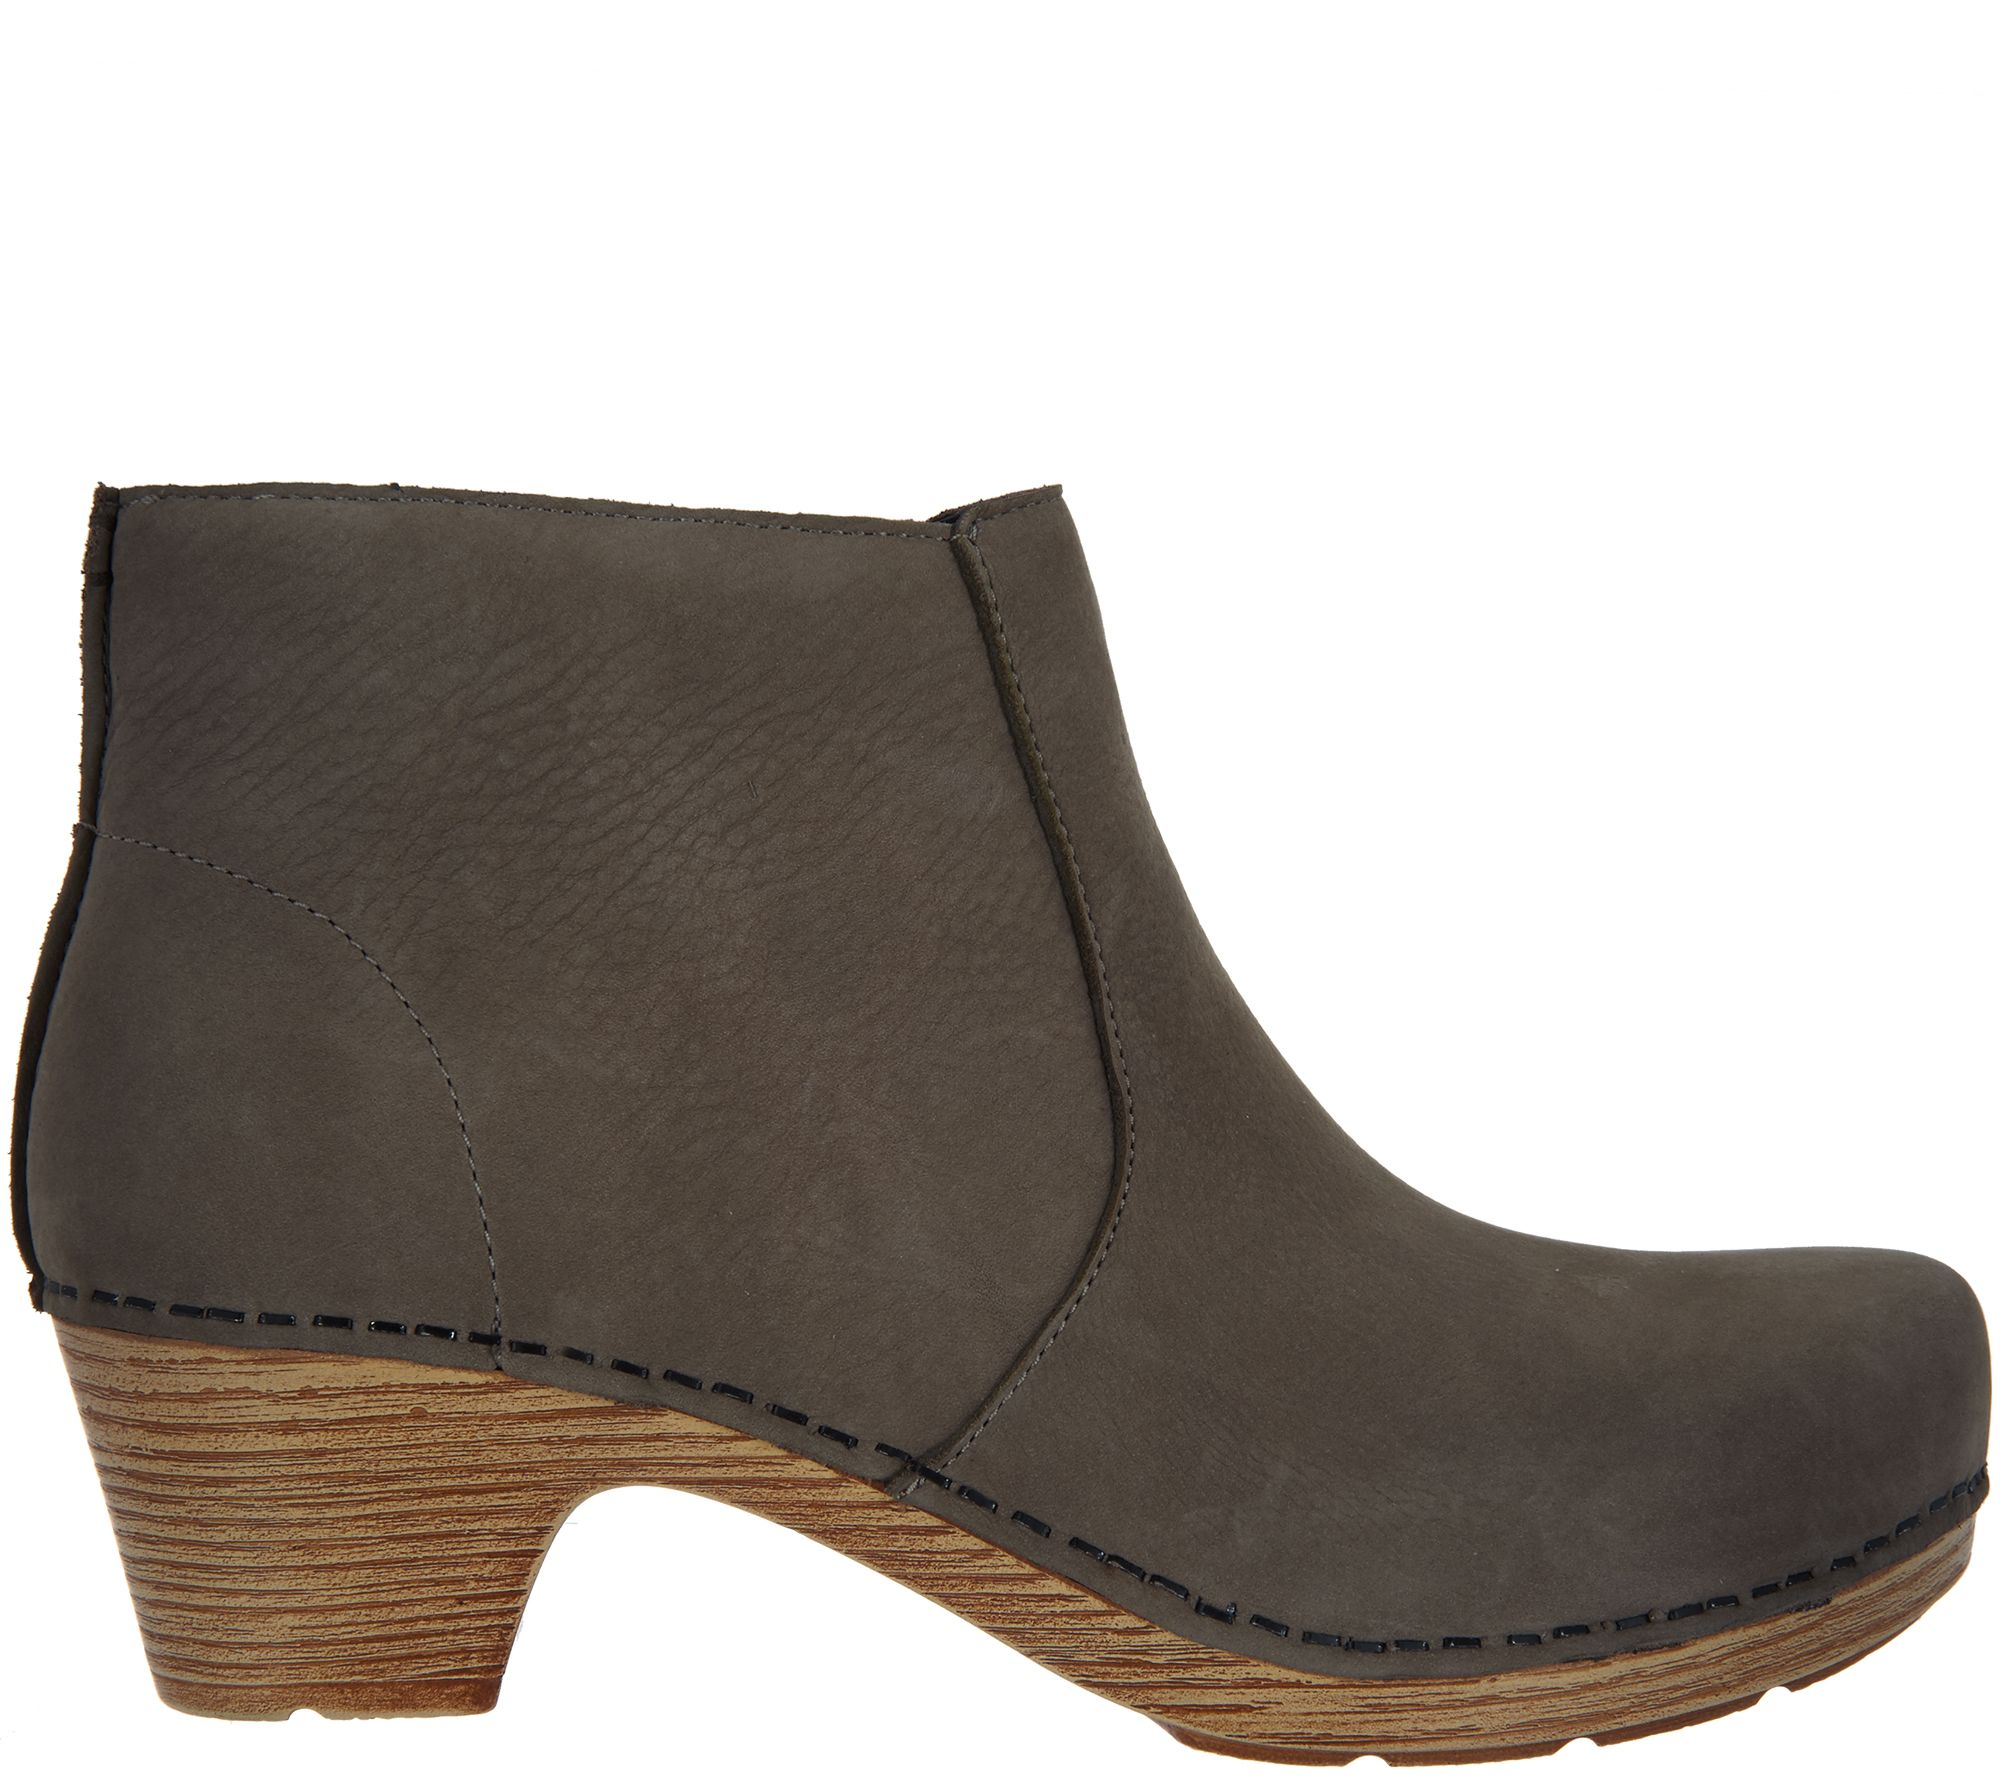 27a033f29367 Dansko Nubuck Leather Ankle Boots - Maria - Page 1 — QVC.com